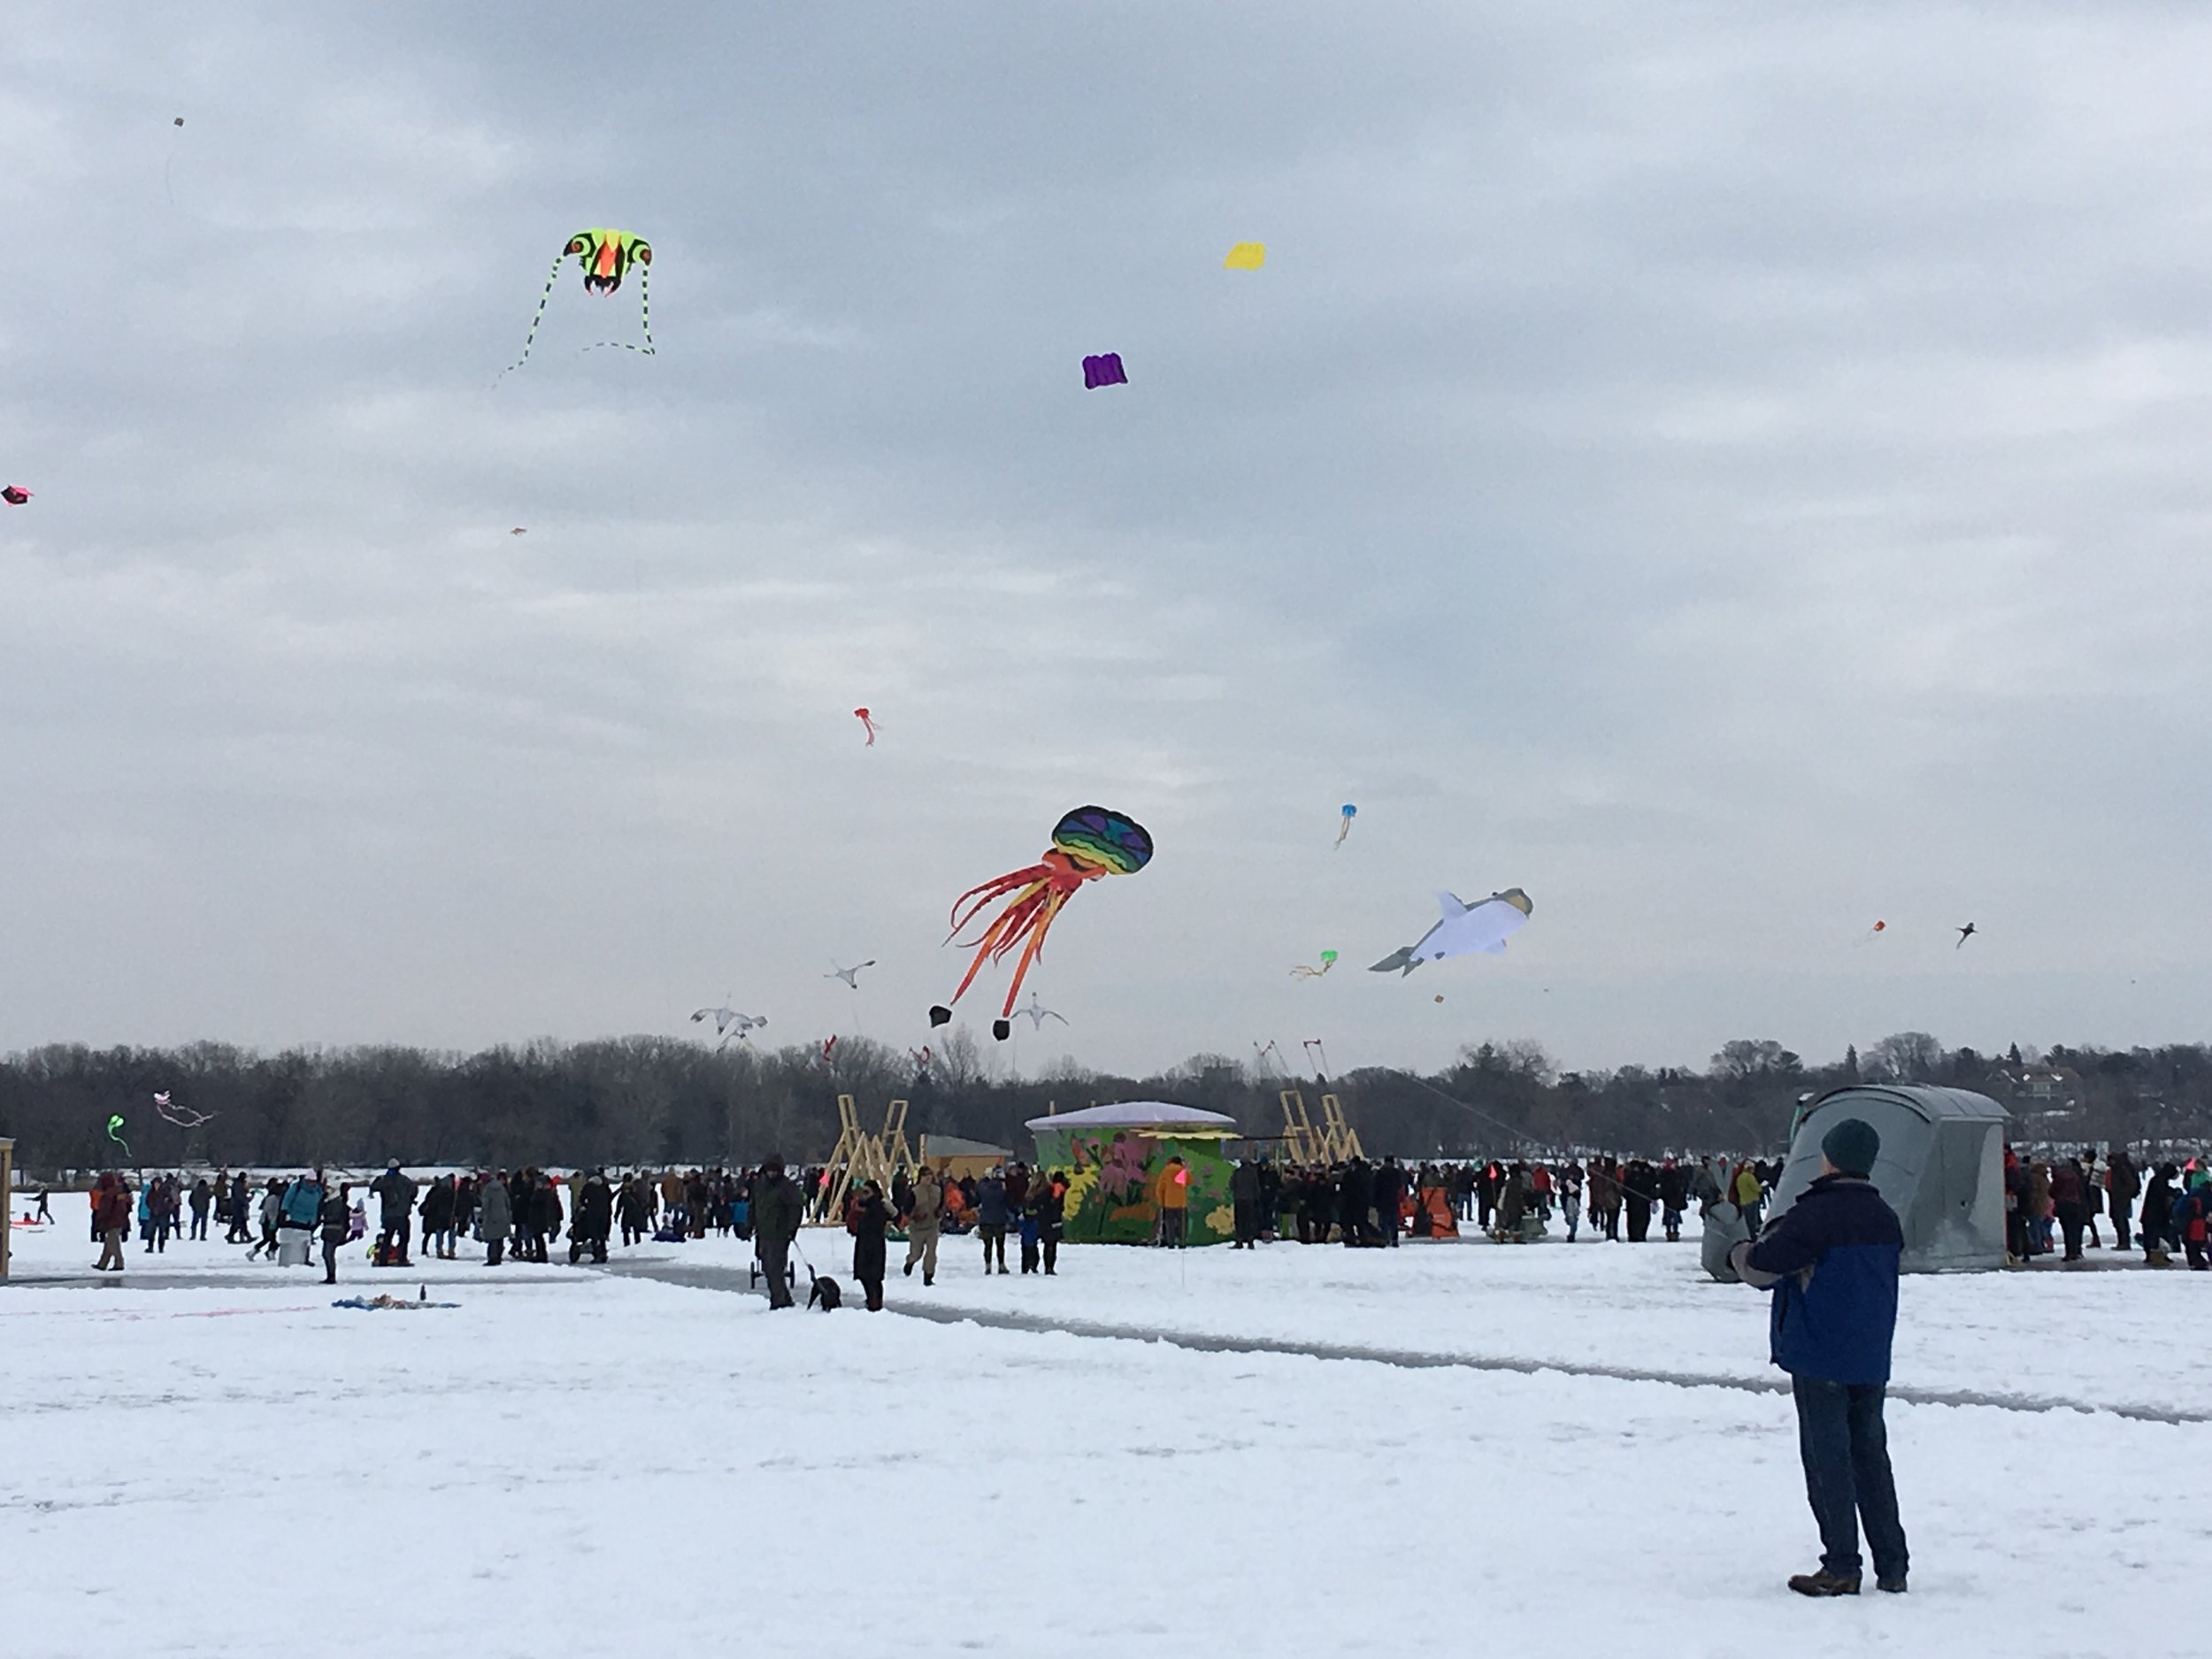 The kites and crowds gathered on Lake Harriet for the Kite Festival